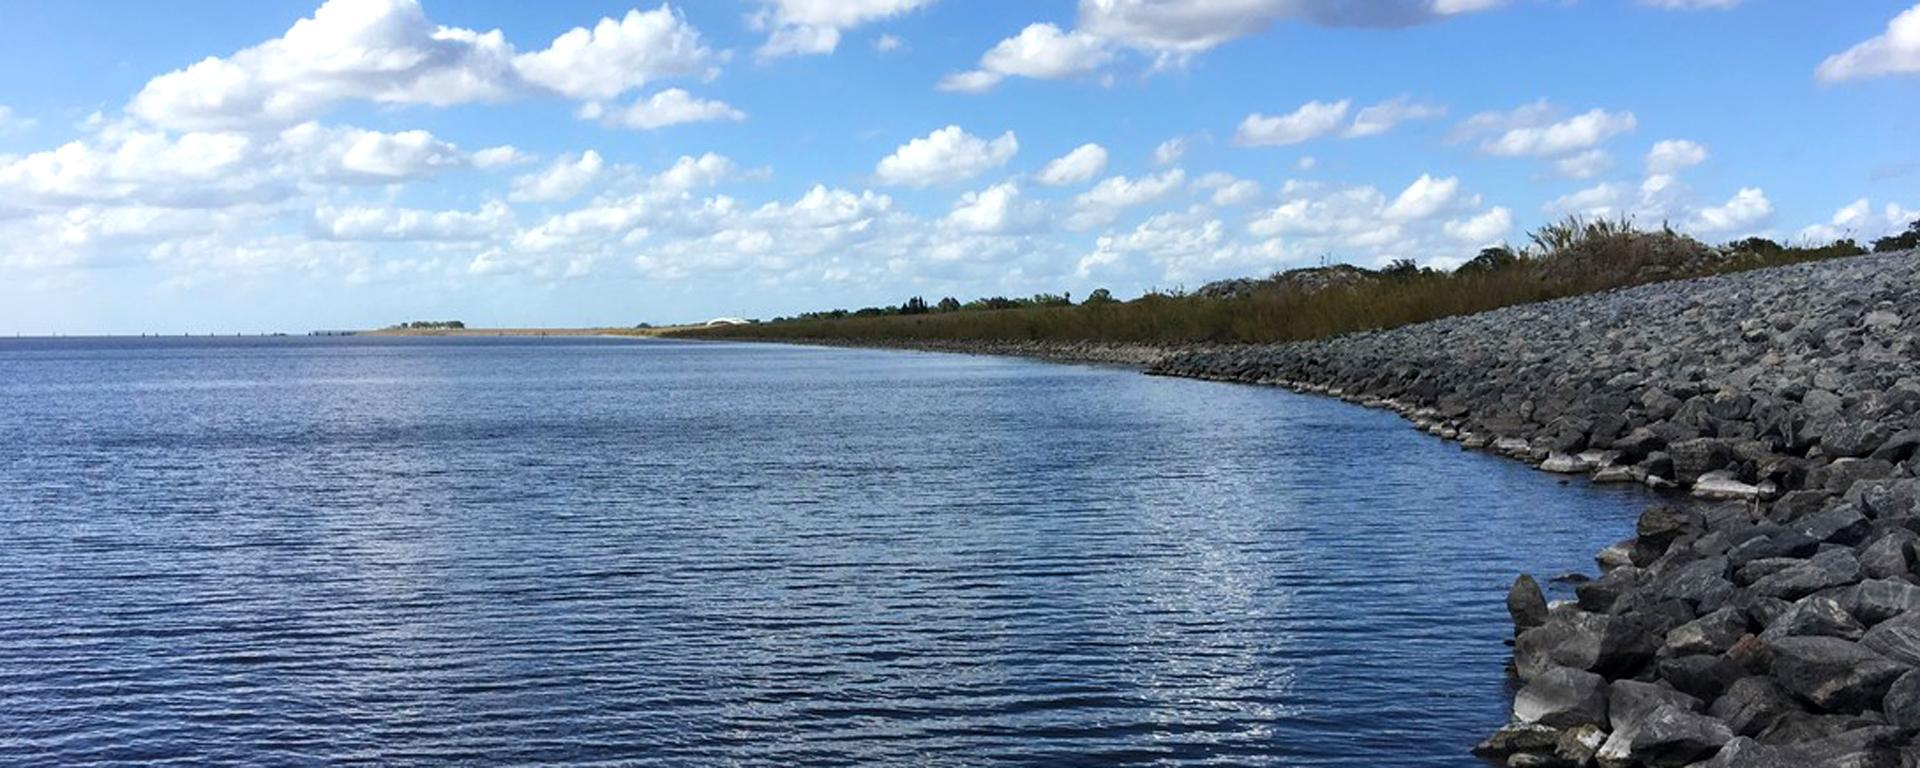 Lake Okeechobee looking north from Structure S-269, photo by the U.S. Army Corps of Engineers